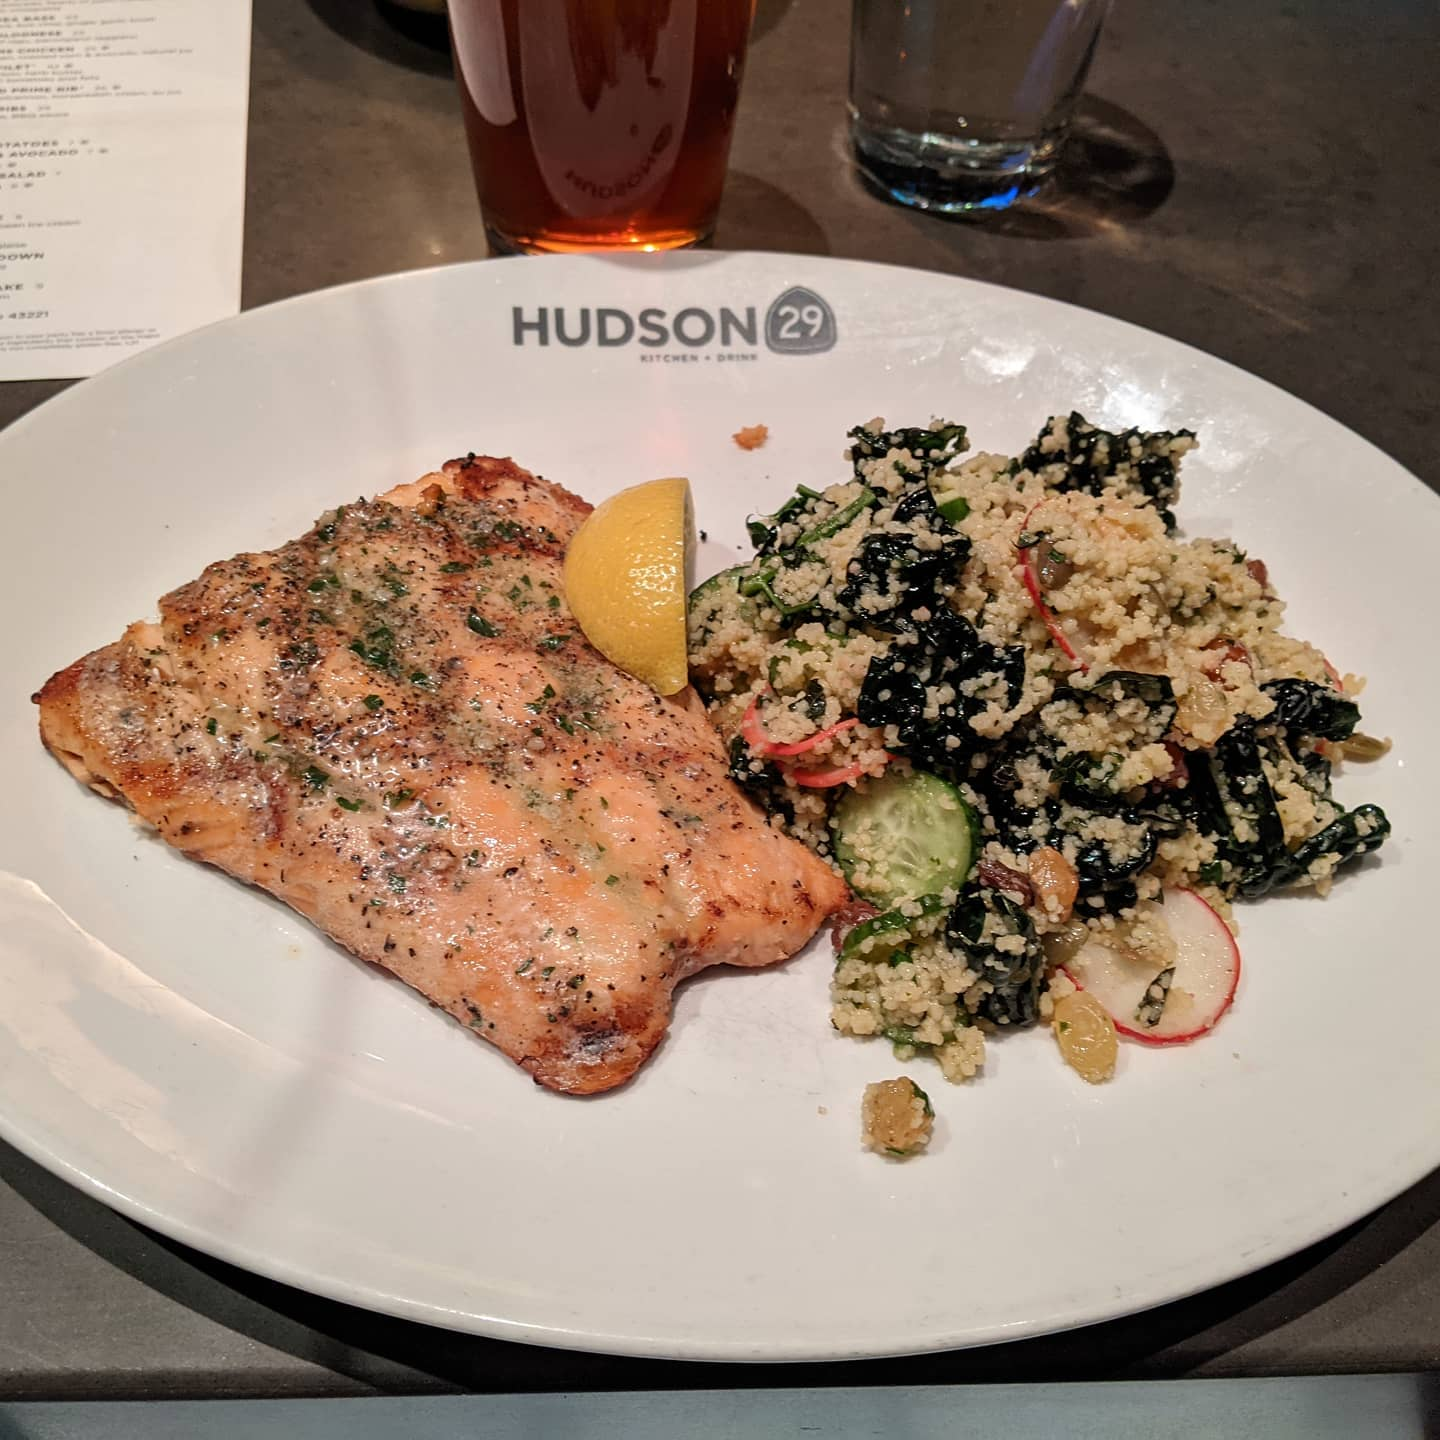 Unexpected #foodporn at #hudson29upperarlington after I got caught up in heavy enough snow that I decided driving another two hours was too dangerous.Really good salmon and couscous, along with a very nice amber ale. Thank you for the lovely evening before I go crash in my hotel next door and watch a movie 🙂